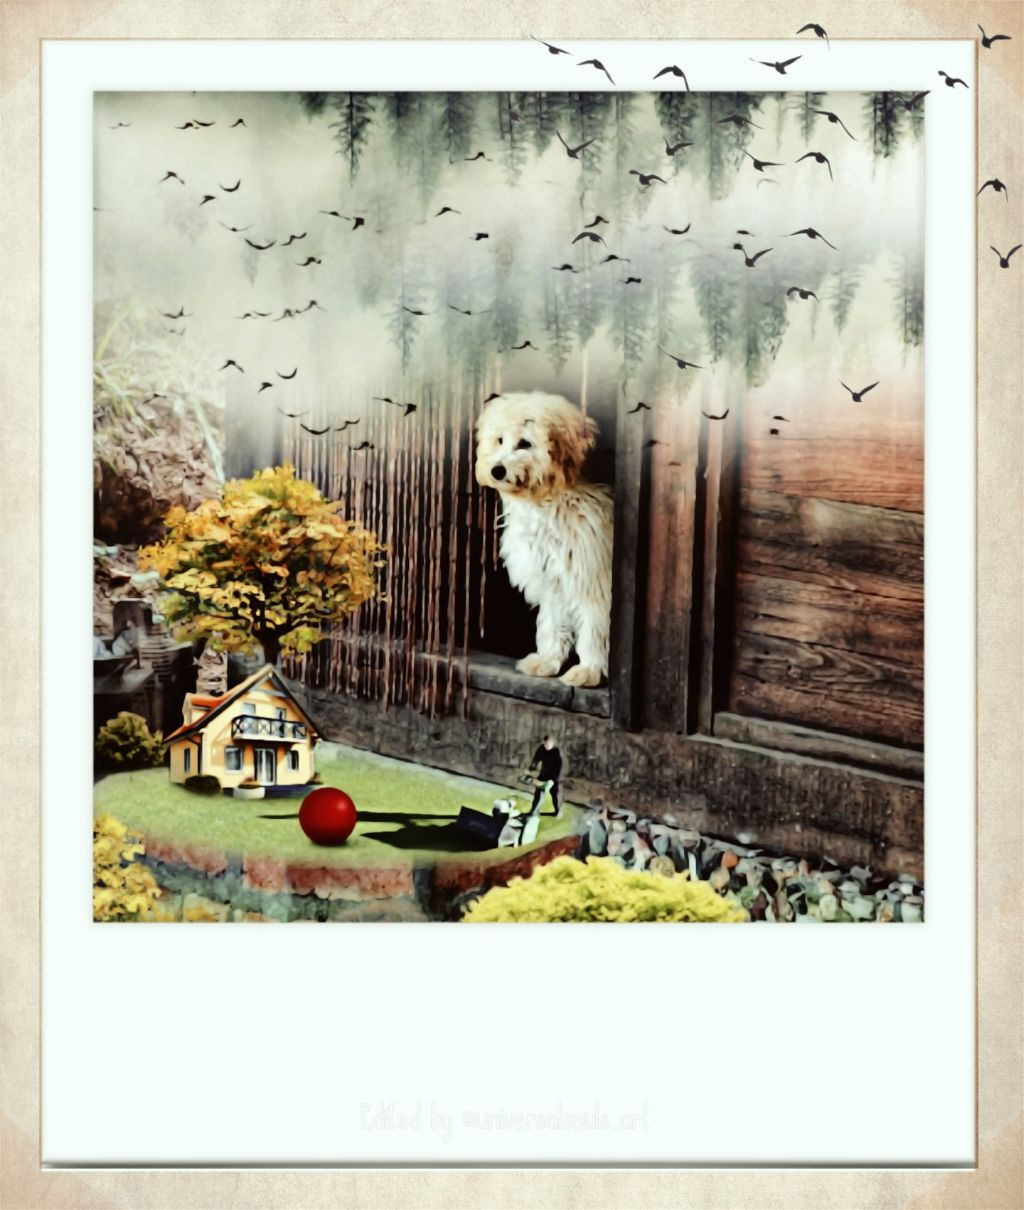 VOTING LINK https://picsart.com/i/304128605071201?challenge_id=5d5d22ebb8dc66229b711a87  #freetoedit #fxtools #polaroid  #retro #stickers #birds #papereffect #edit of my original edit #myimaginationatwork  #srcretroframe